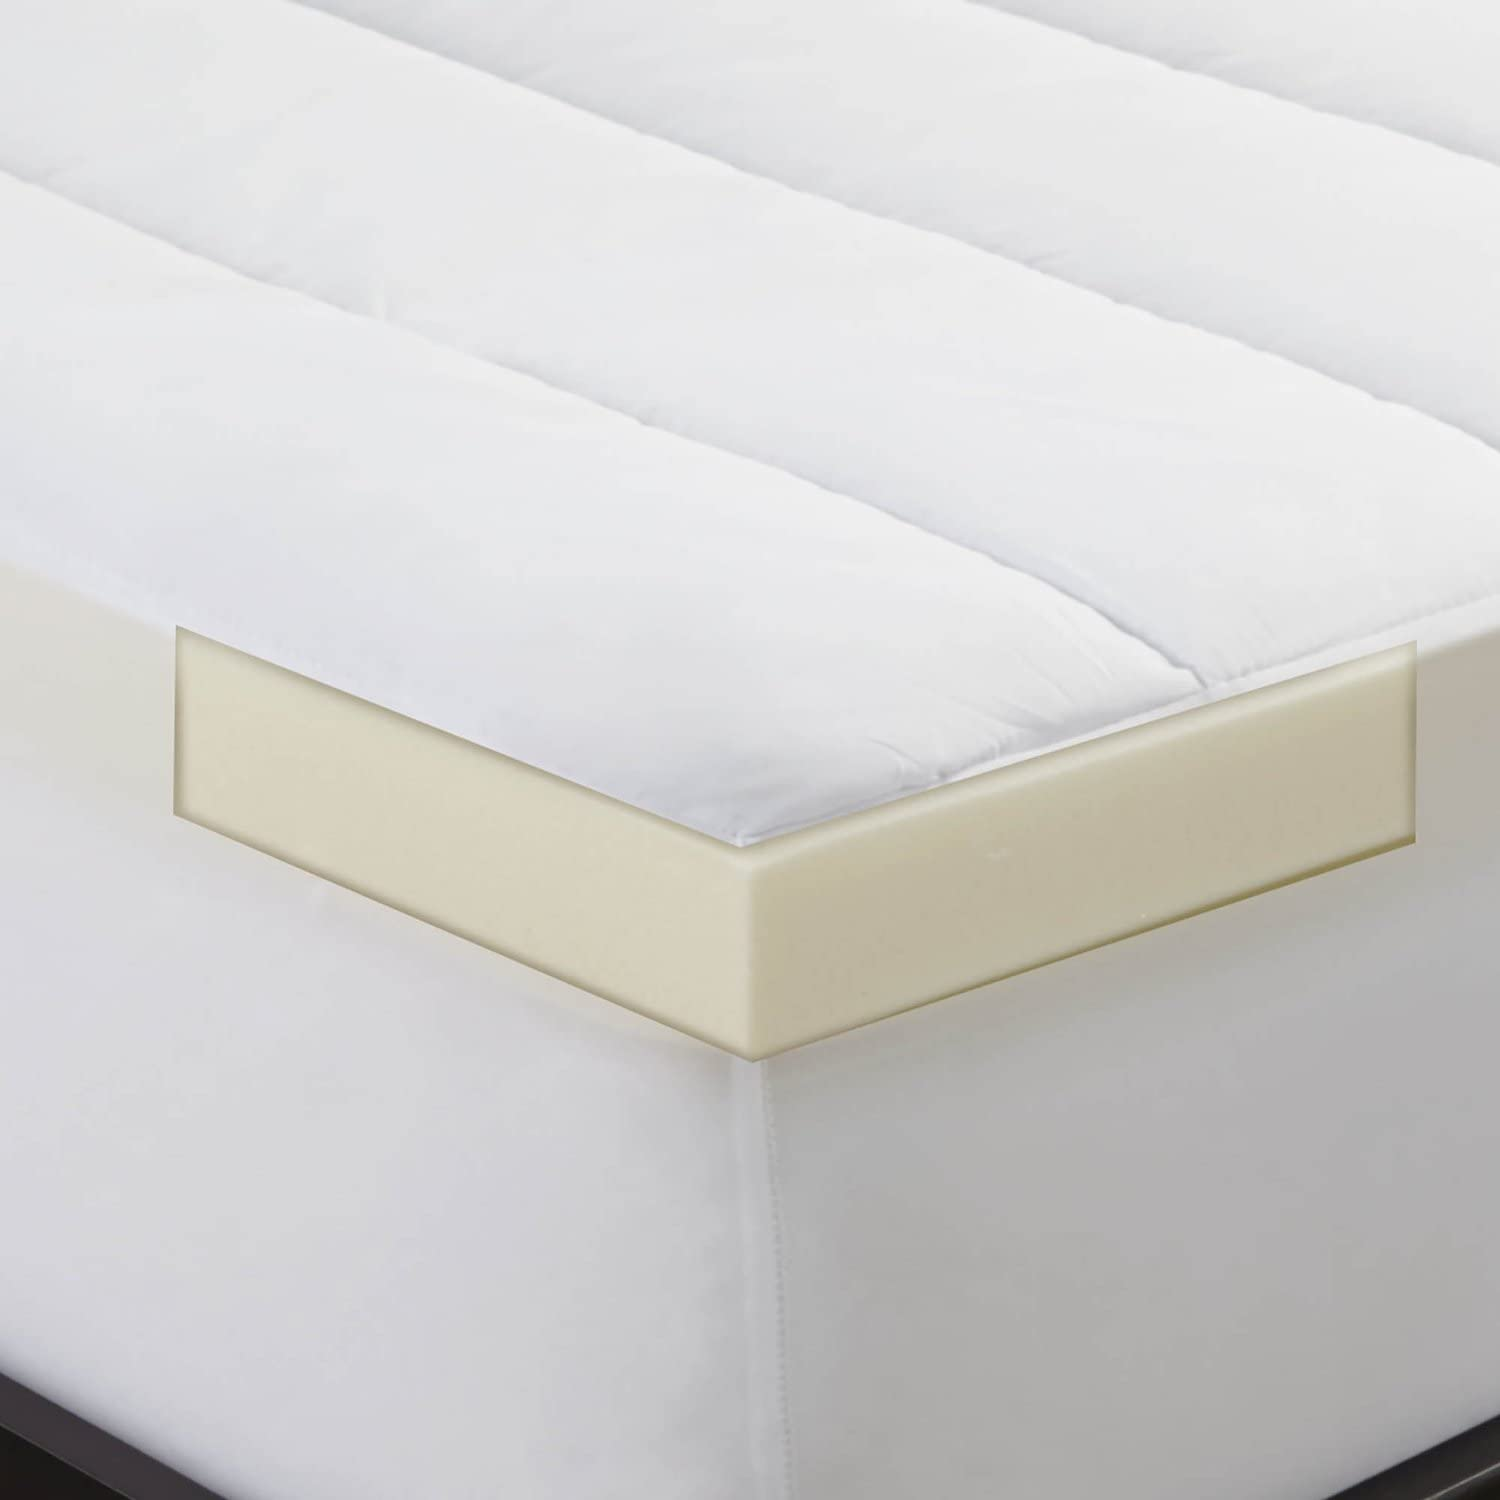 Sleep Innovations 2-inch Memory Foam Mattress Topper and Waterproof Mattress Protector, Made in The USA with a 10-Year Warranty - Twin XL Size